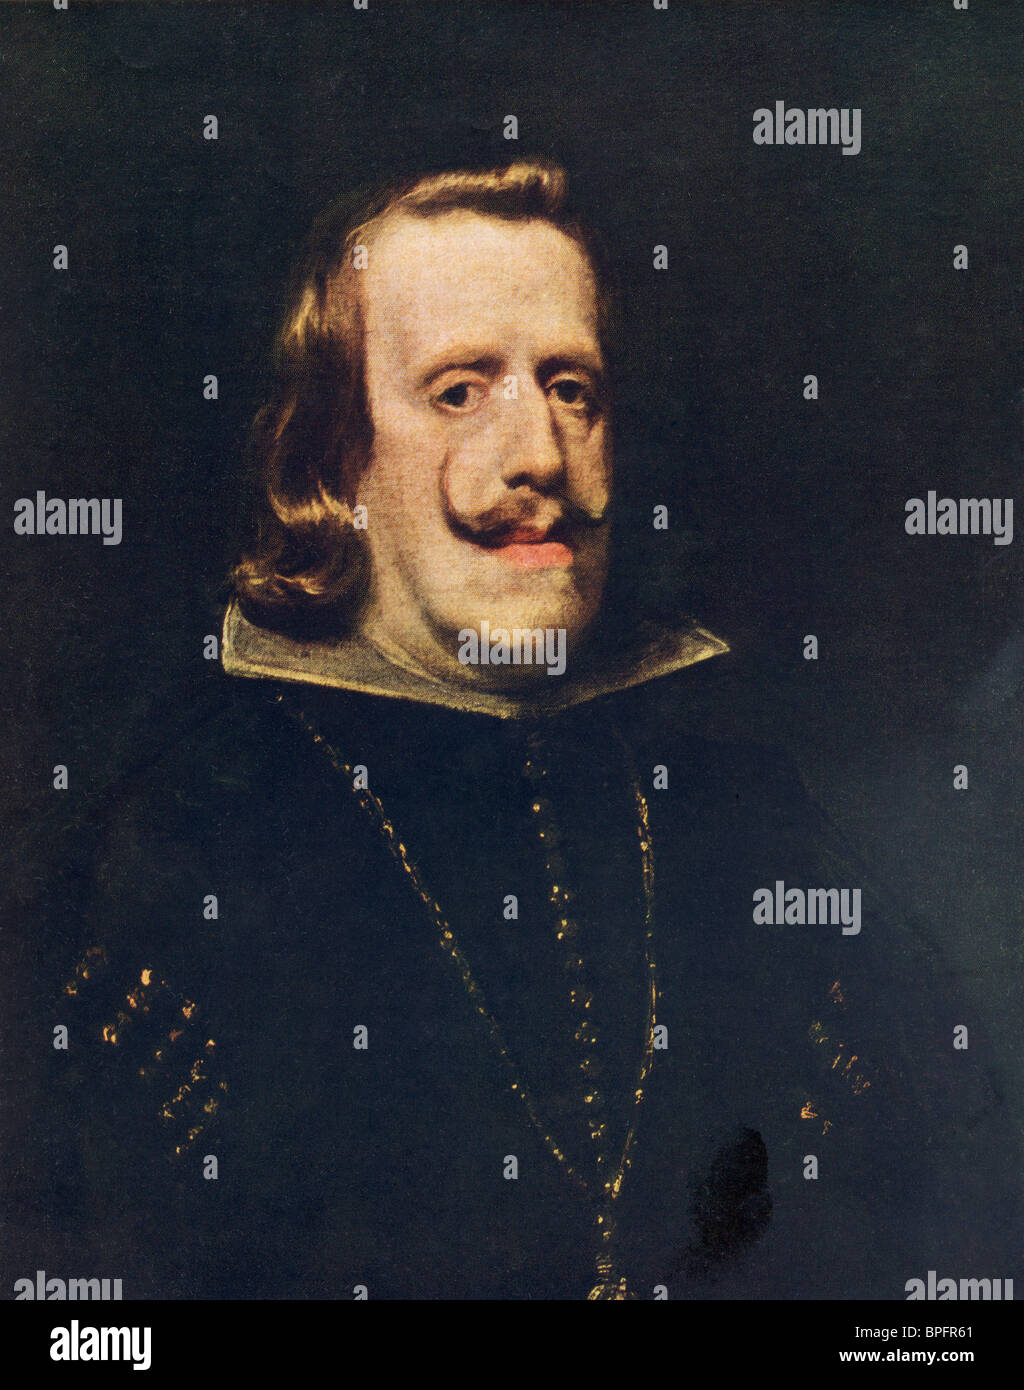 Philip IV. Painting by Diego de Silva y Velazquez. King Philip IV of Spain 1605 - 1665. - Stock Image